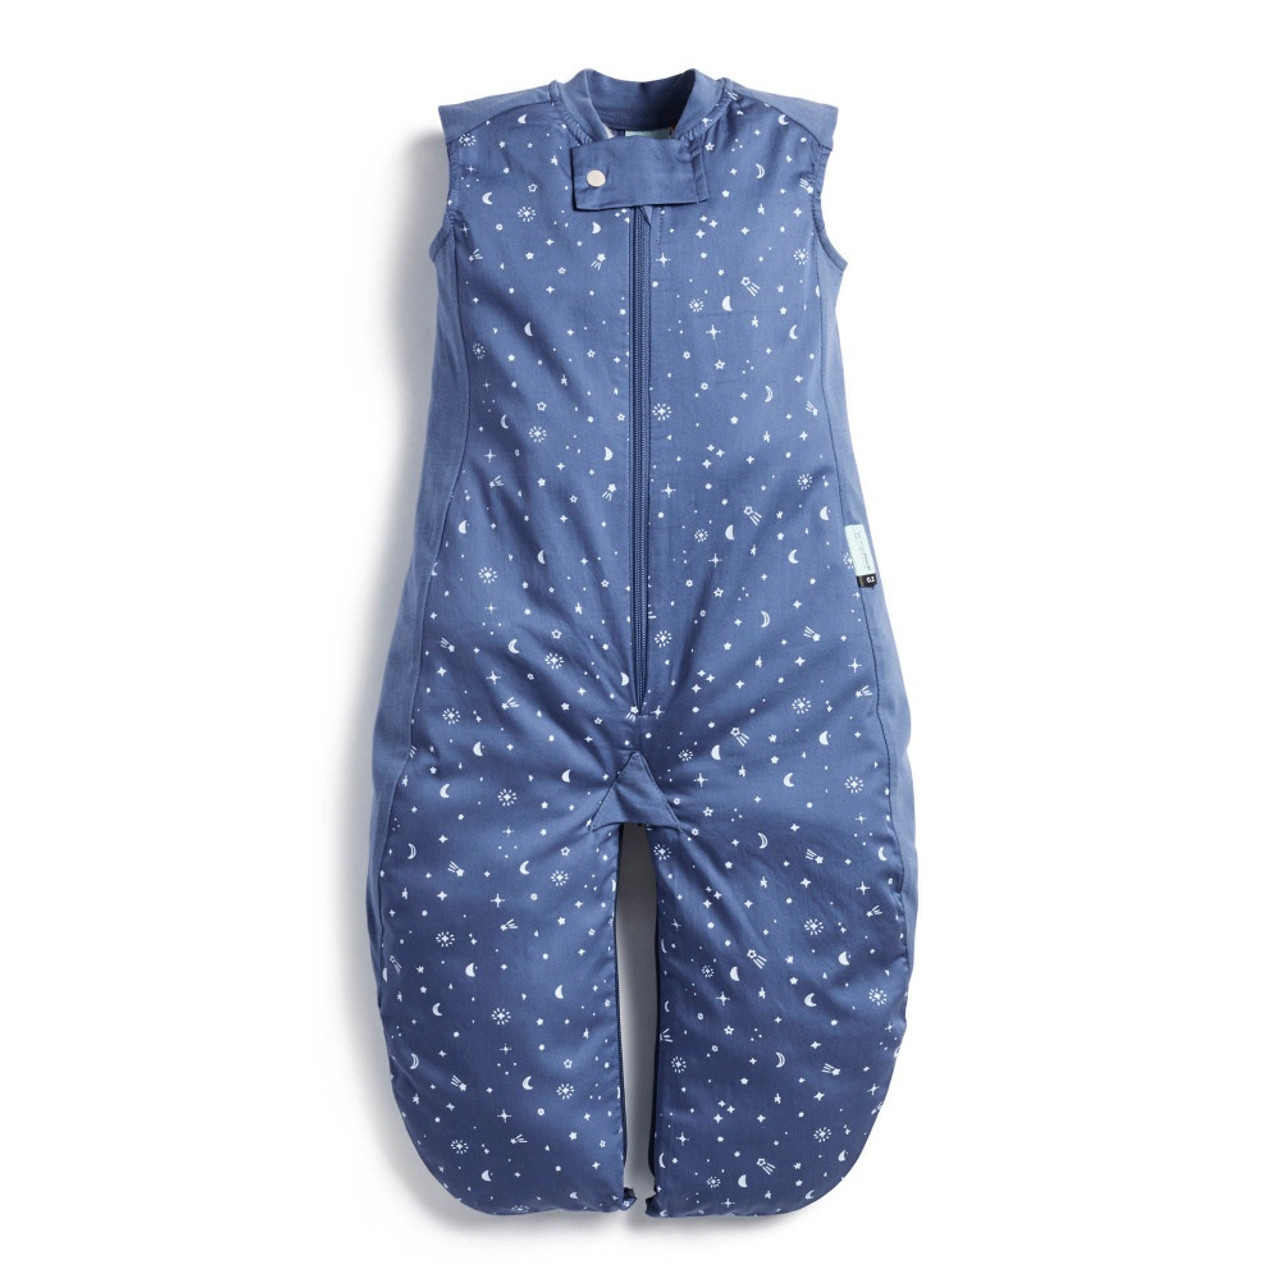 Ergopouch Sleep Suit Bag 0.3 Tog 2-4 Years NIGHT SKY at Baby Barn Discounts Ergopouch Sleep Suit Bag converts from a sleeping bag to a suit with legs using zippers.